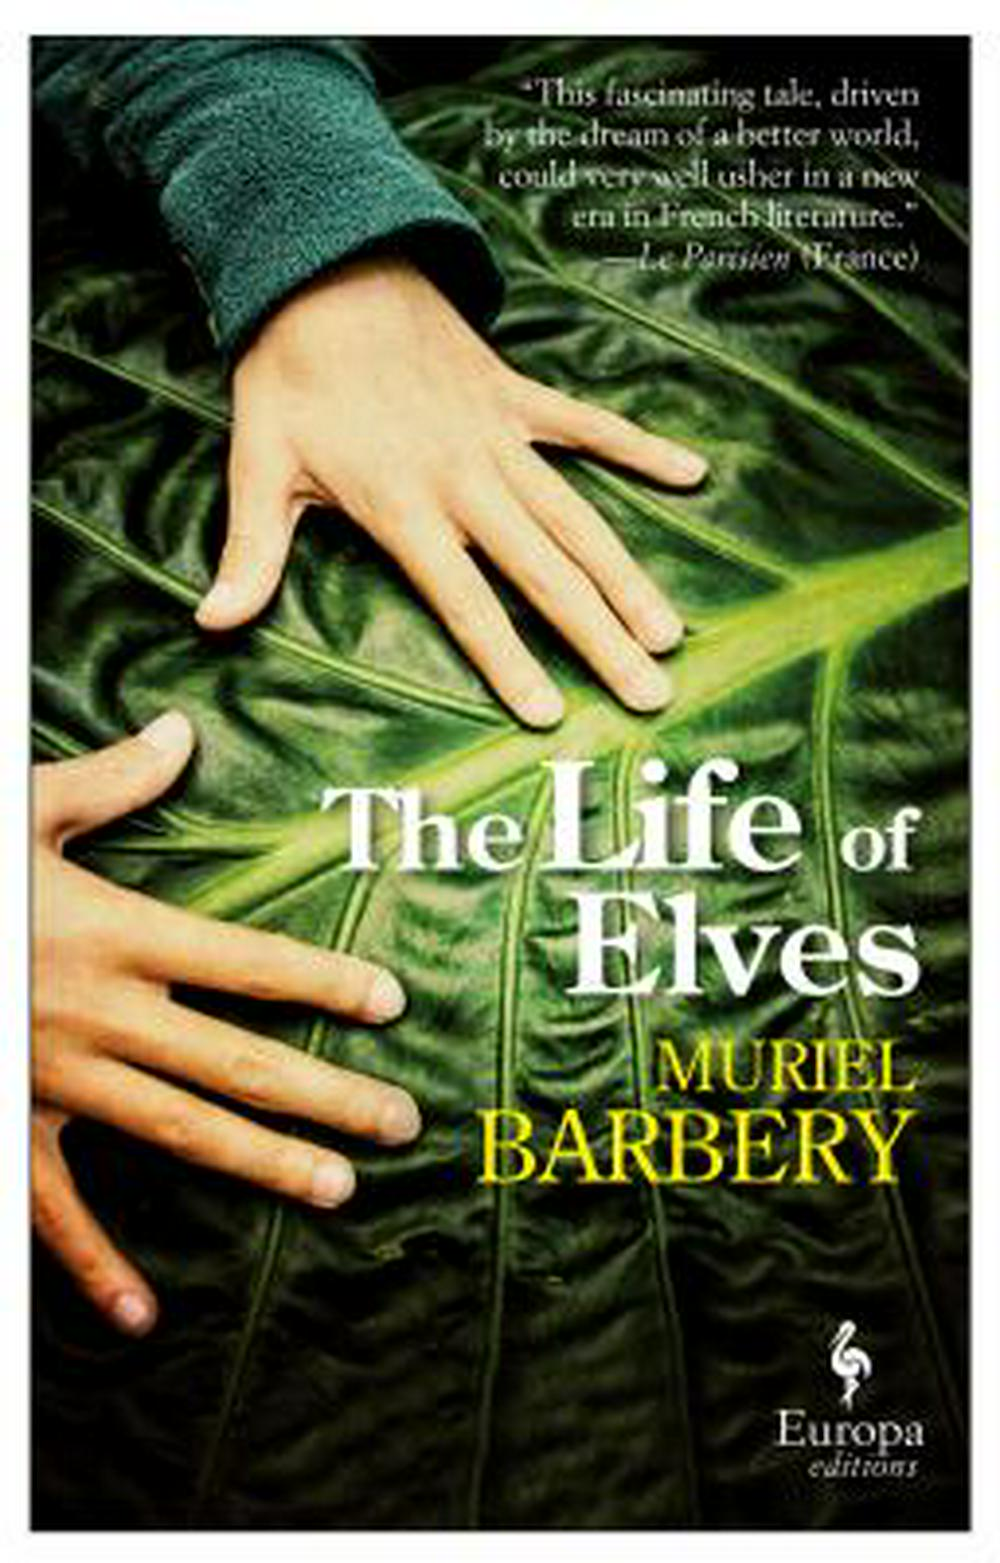 The Life of Elves by Muriel Barbery, ISBN: 9781609453152